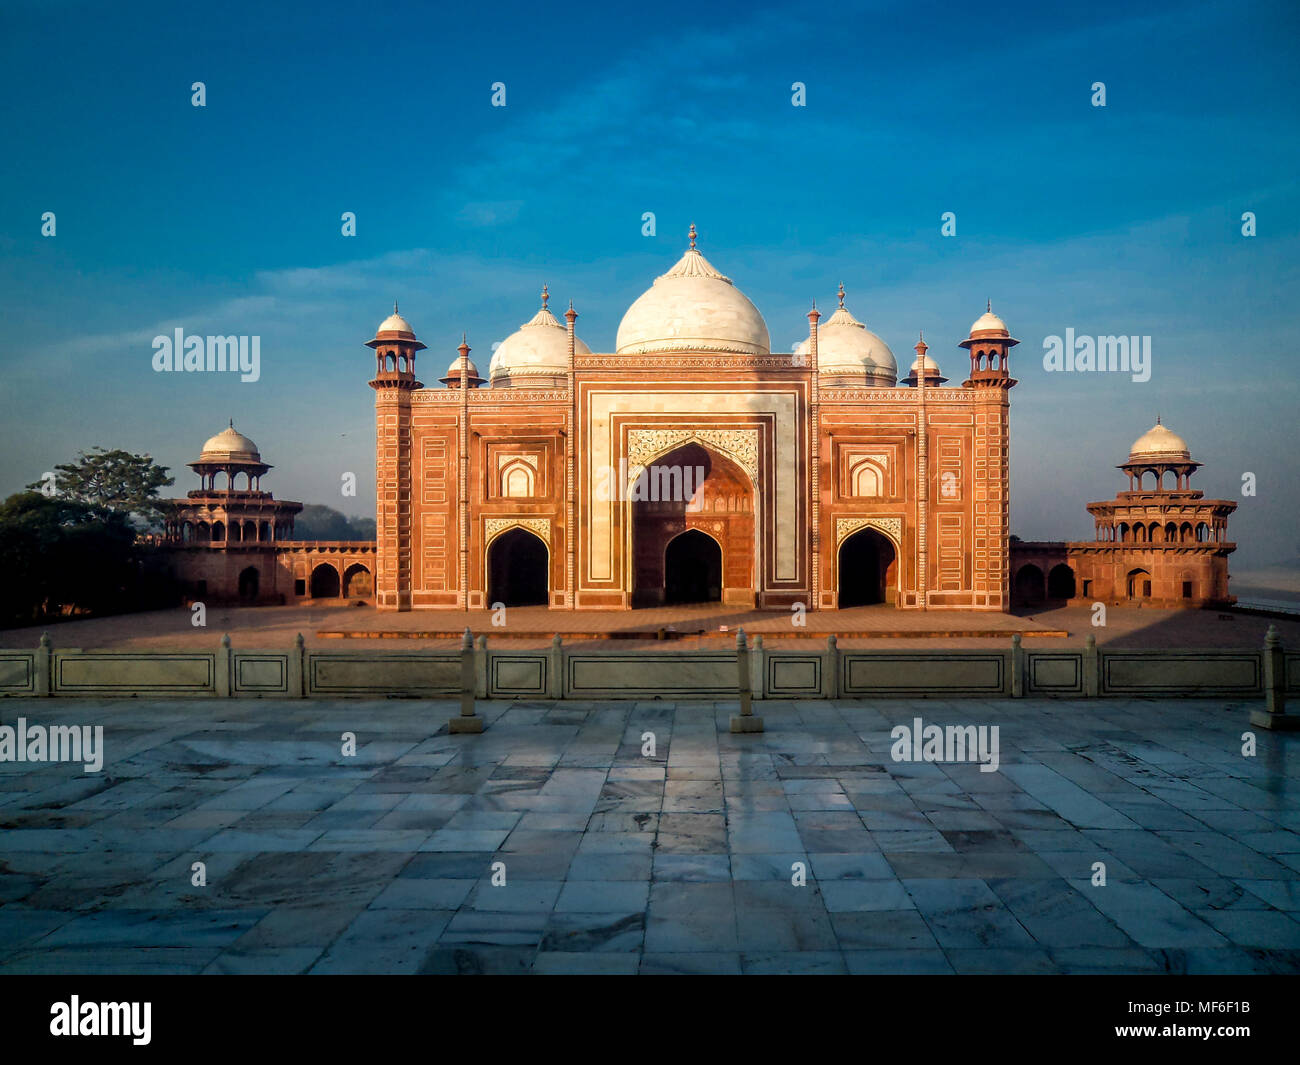 The mosque at the Taj Mahal, Agra, India - Stock Image